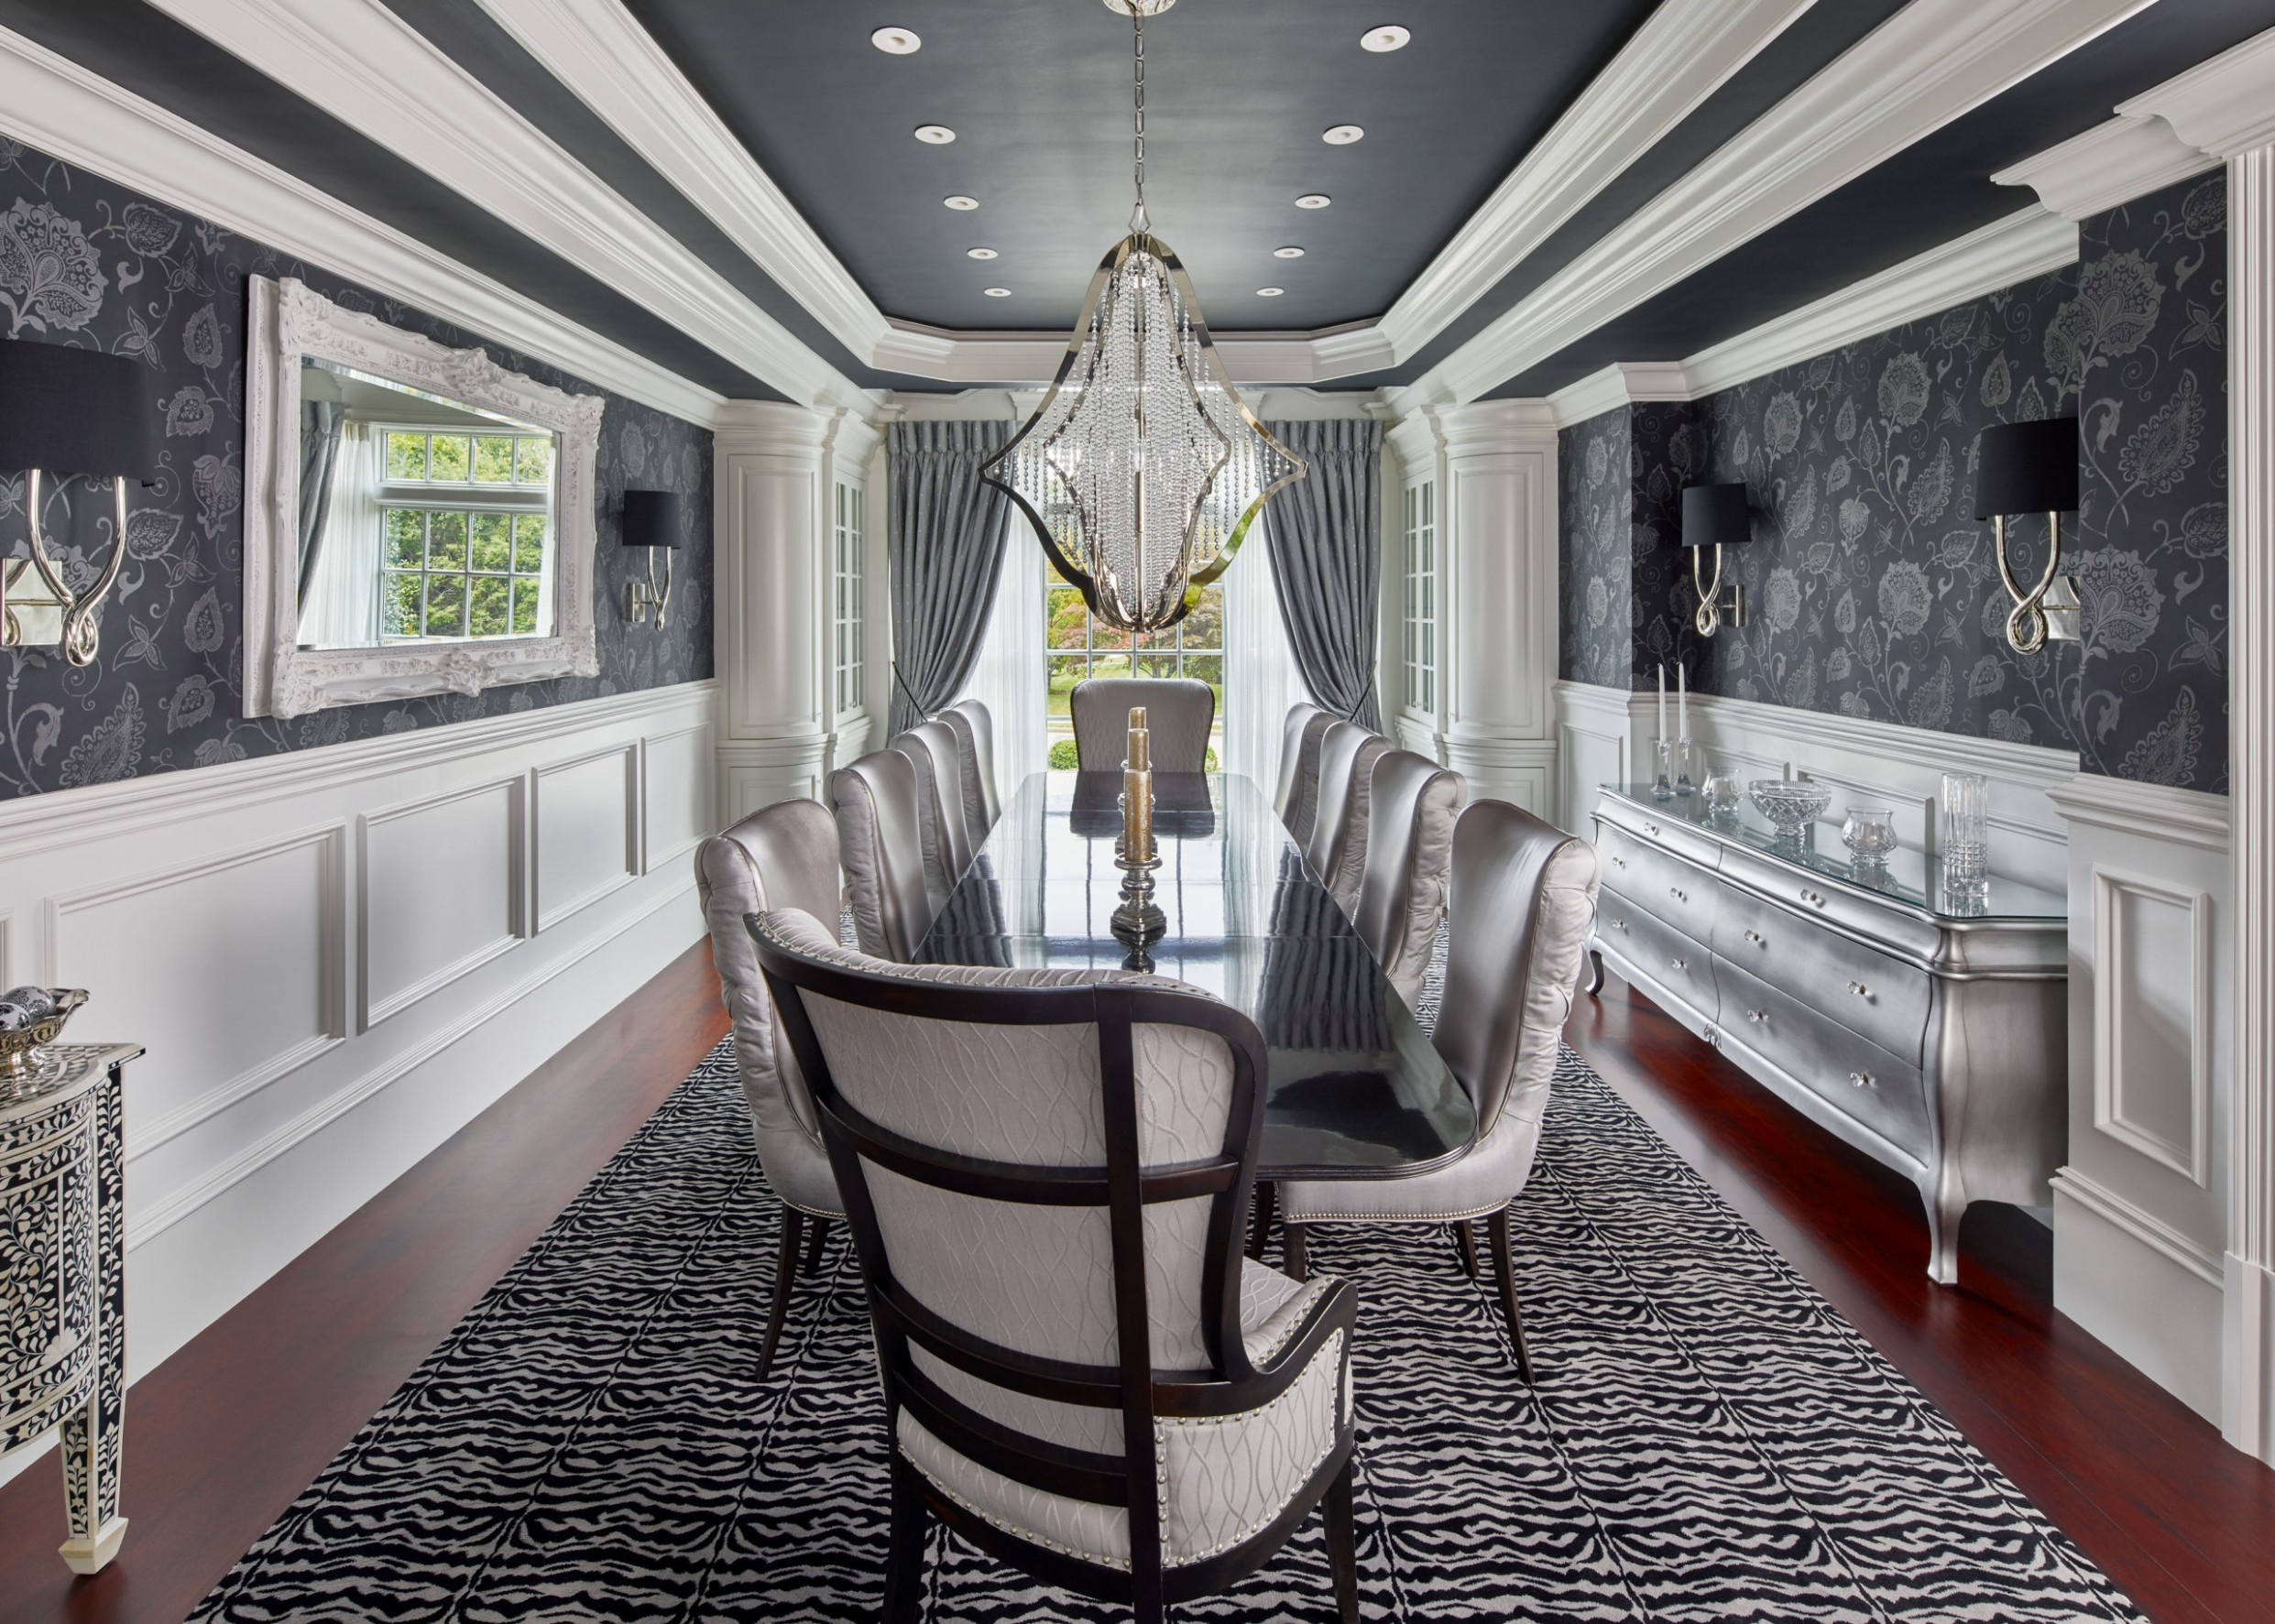 12+ Beautiful Wainscoting Dining Room Pictures & Ideas November  - Dining Room Ideas With Wainscoting